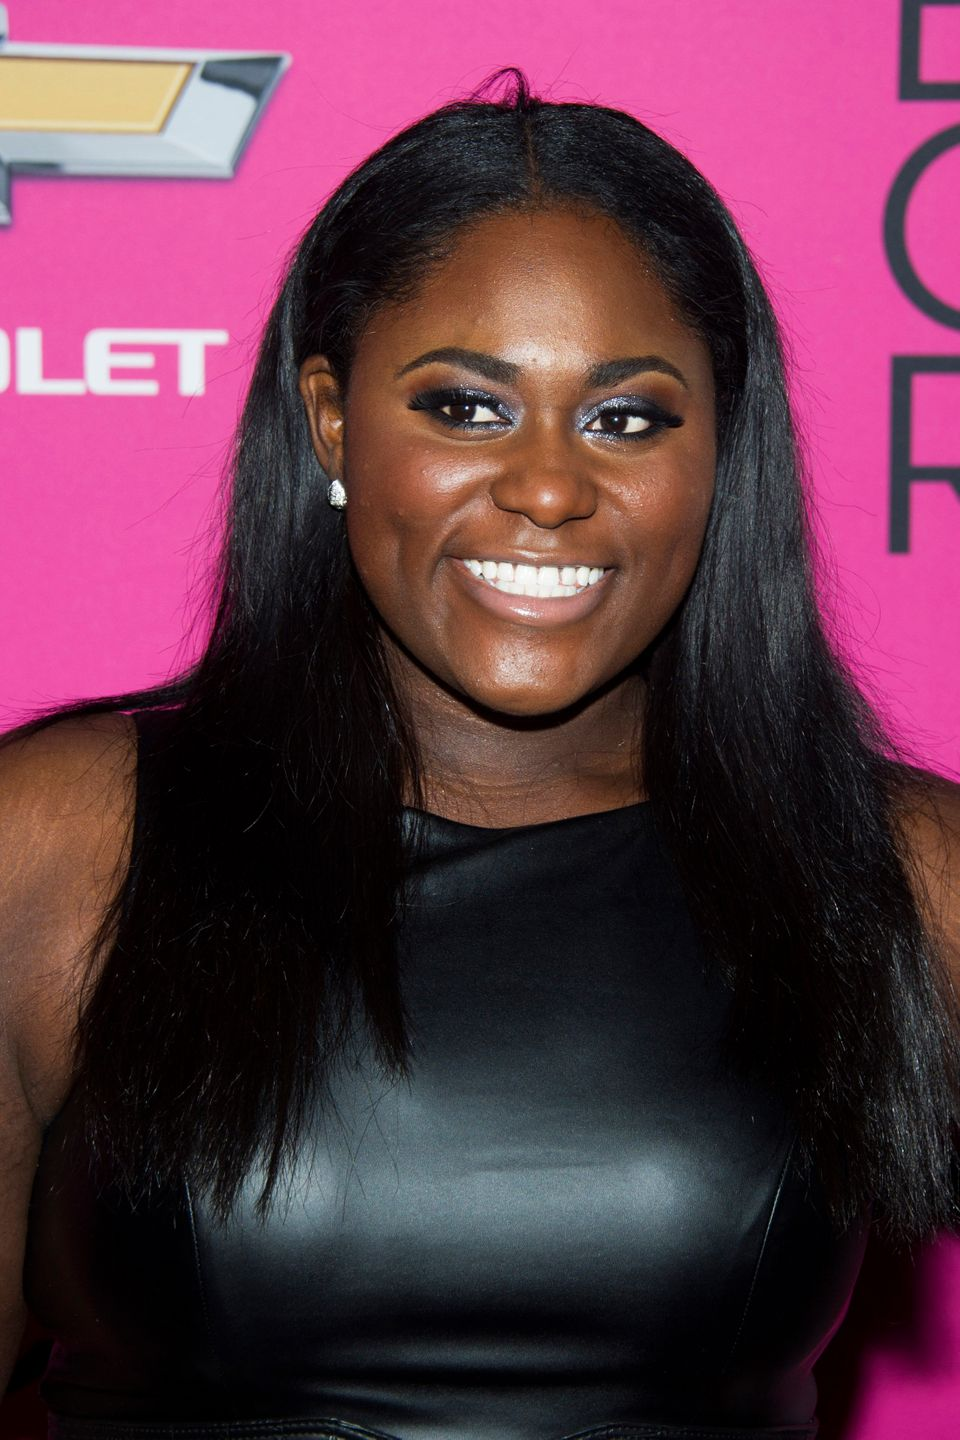 Danielle Brooks attends BET Network's Black Girls Rock! on Saturday, Oct. 26, 2013 in Newark, N.J. (Photo by Charles Sykes/In